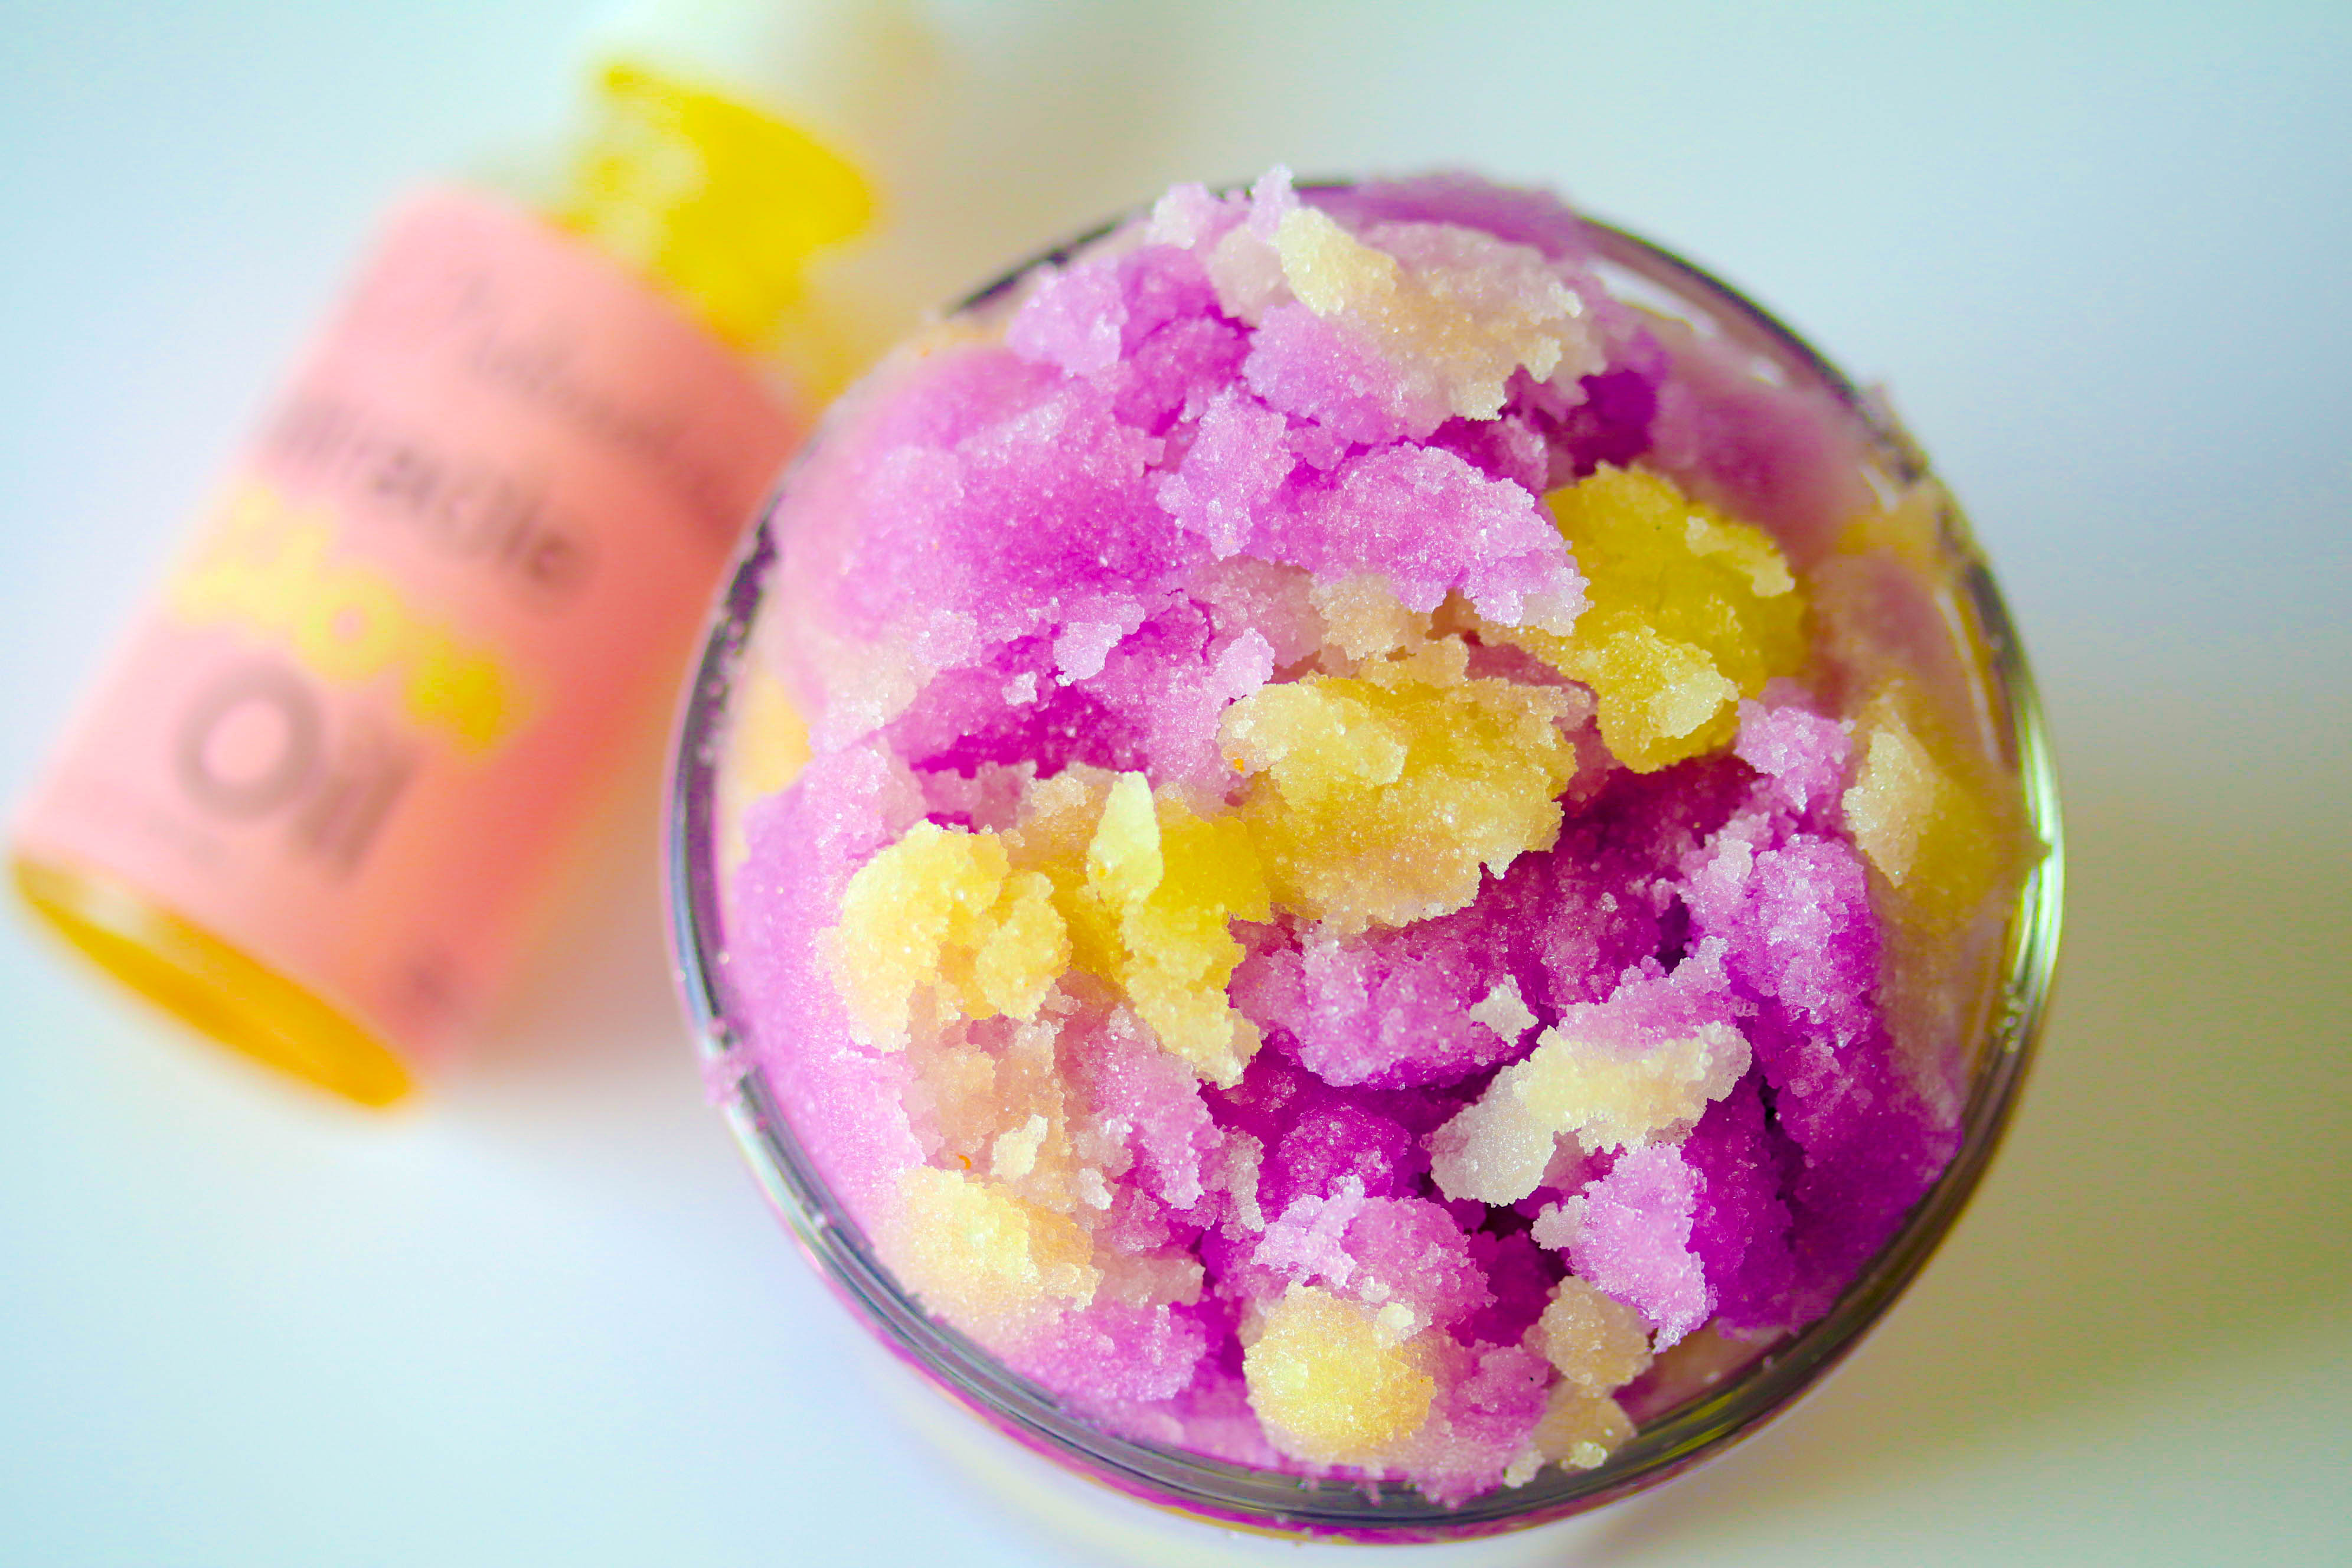 Black Raspberry Vanilla Body Scrub Is The Perfect Bath And Body Works Copy Cat Scrub To Cleanse Skin And Remove Dead Skin Cells Its A Savvy Way To Make